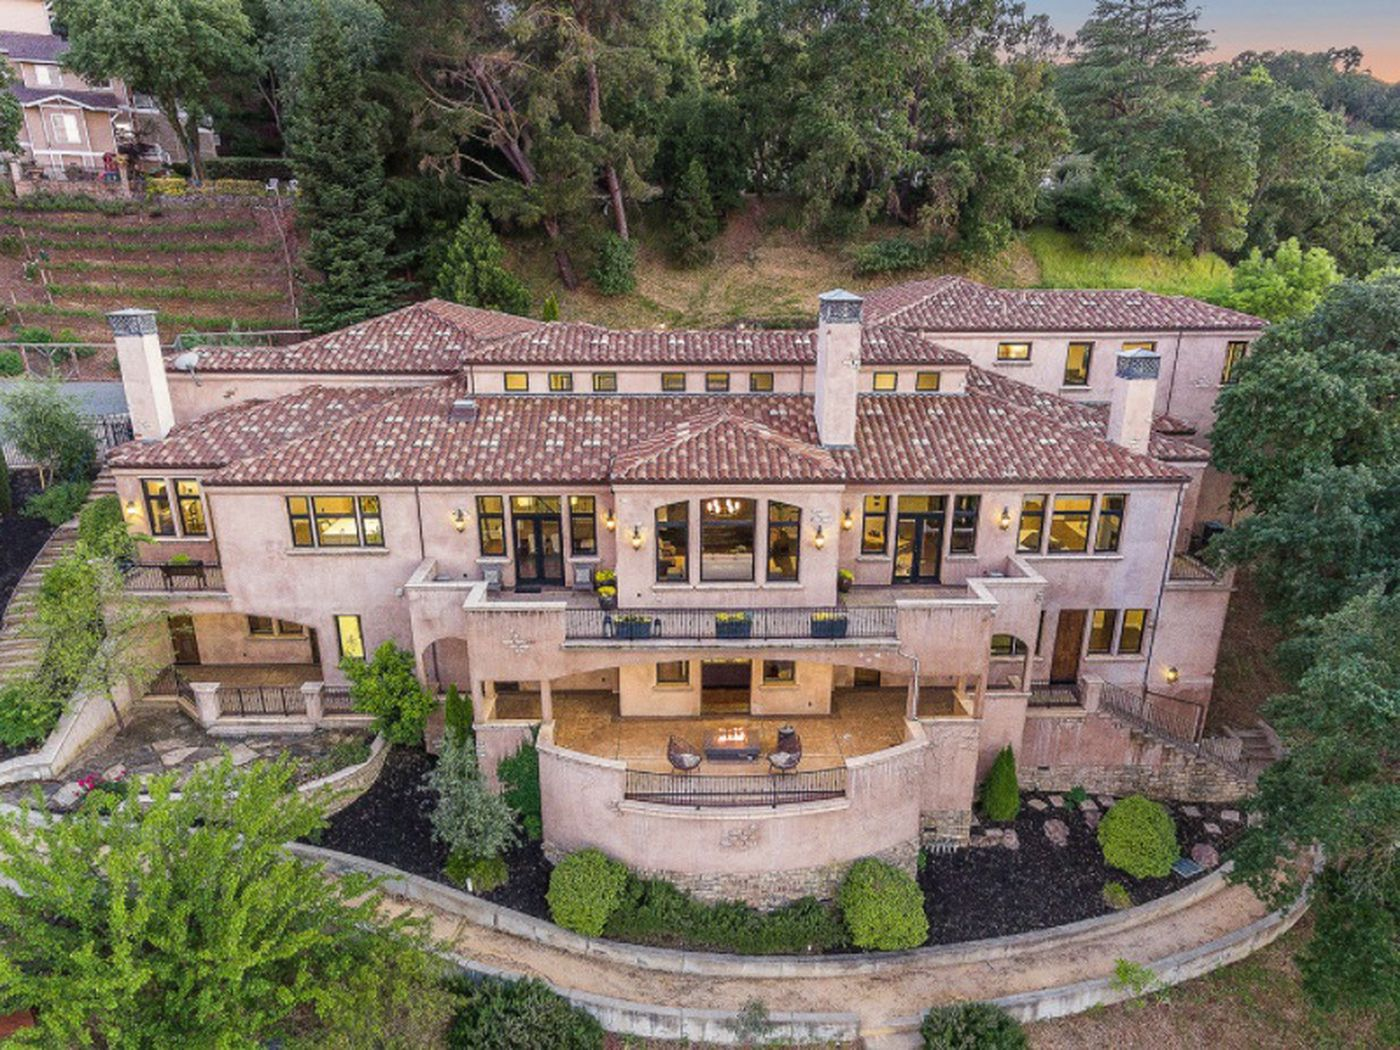 Pics of celebrity homes - Steph Curry S East Bay Mansion Drops Price For A Loss